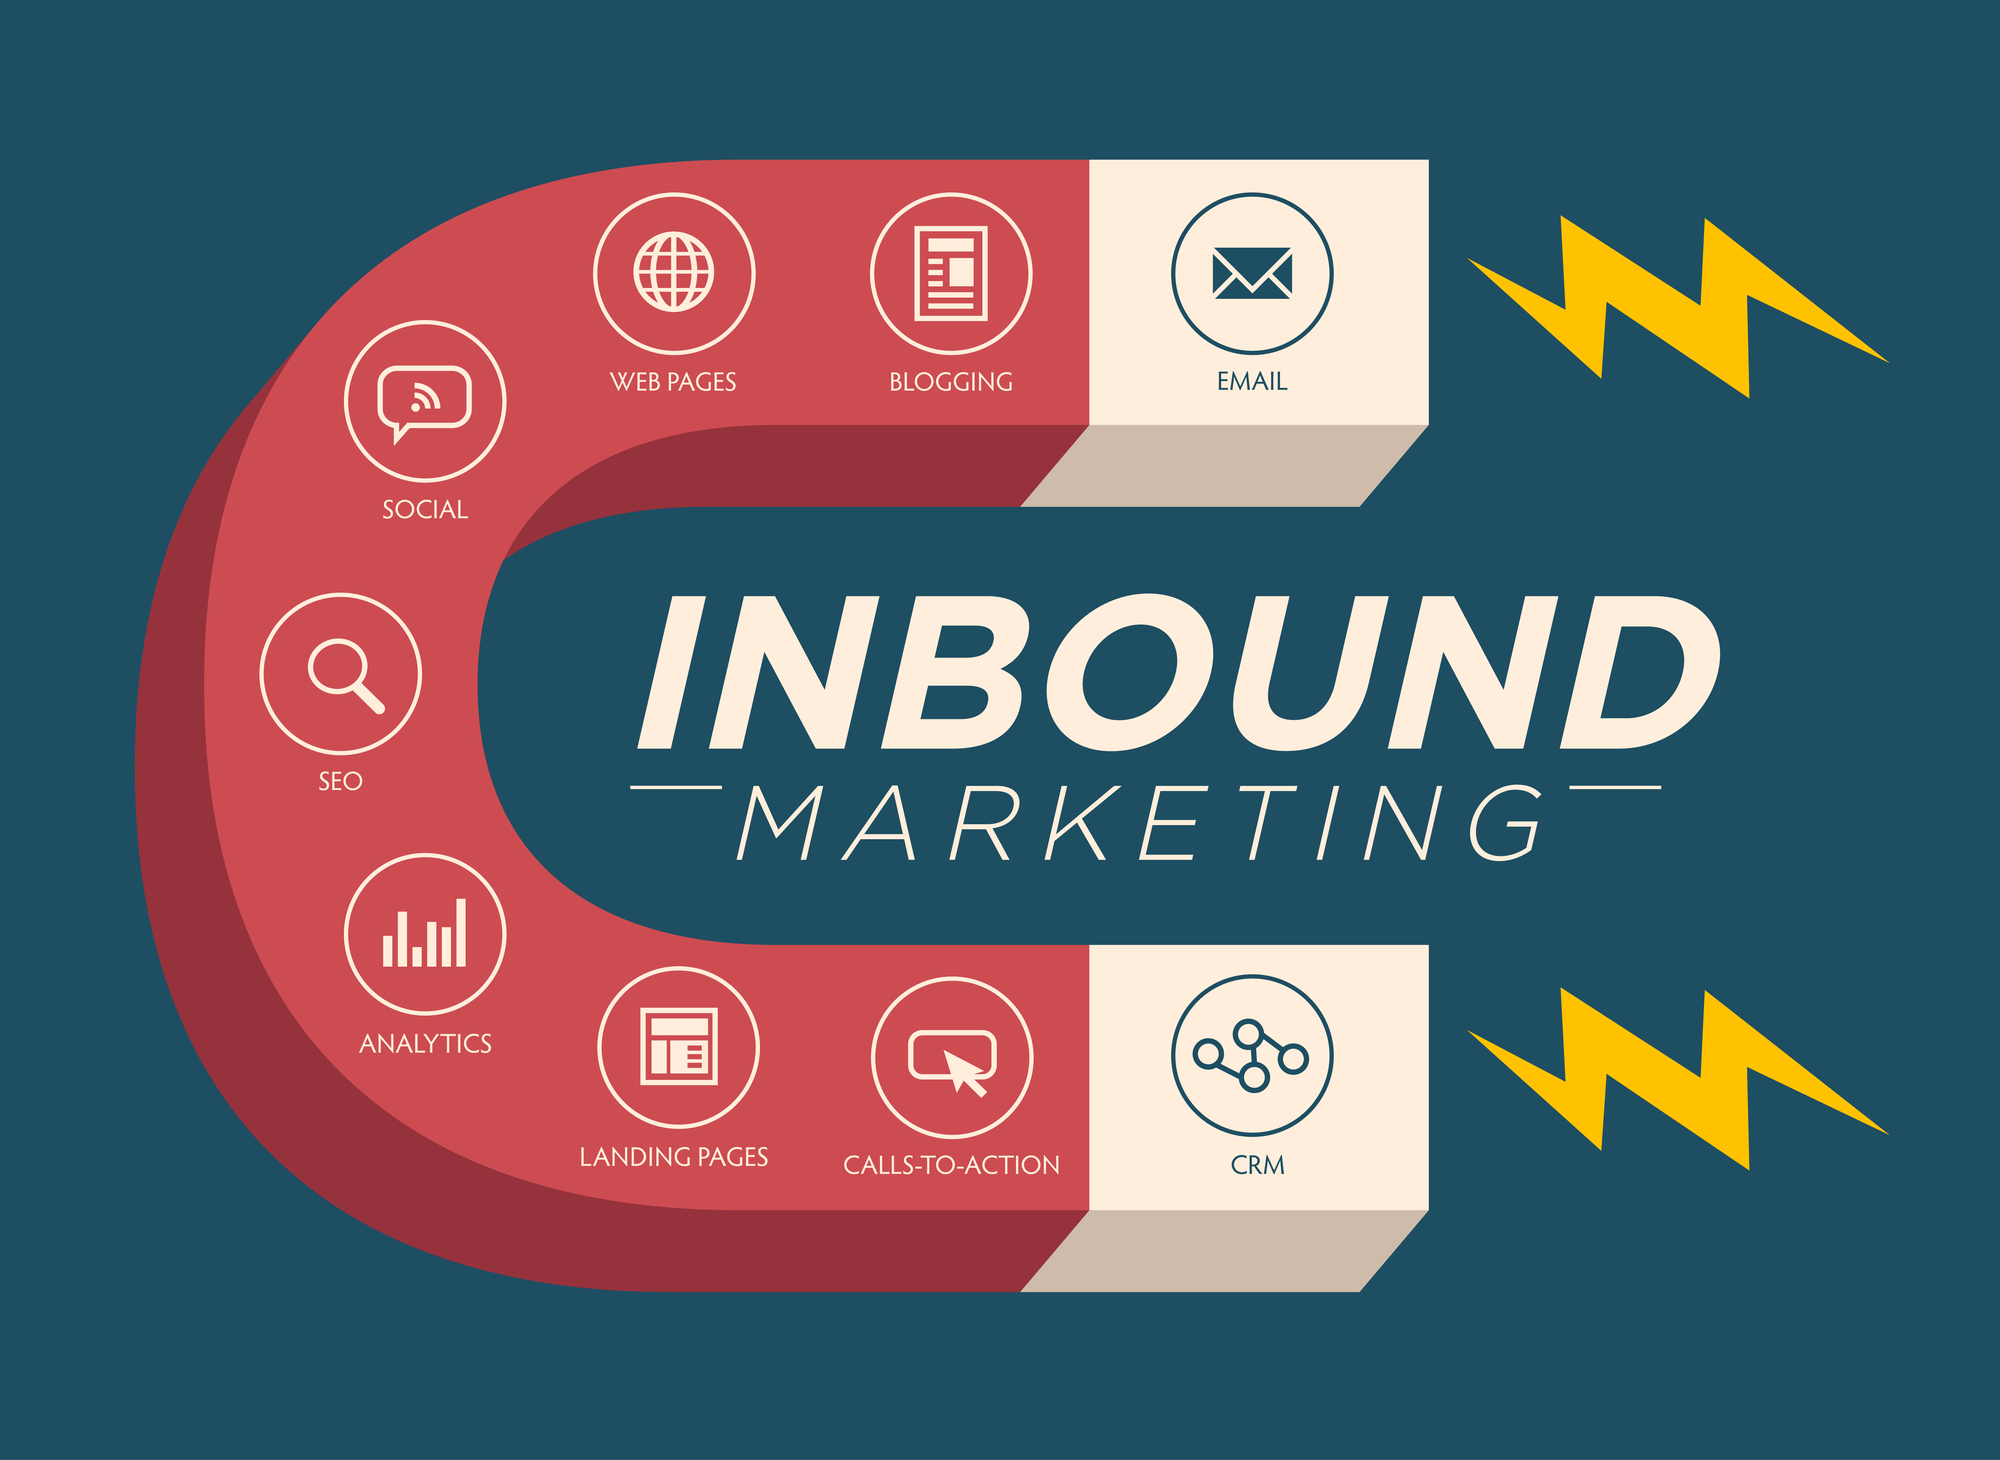 Inbound Marketing Magnet Graphic with Blogging, Web Pages, Social, Call to Action or CTA, email, landing page, analytics or reporting, and CRM